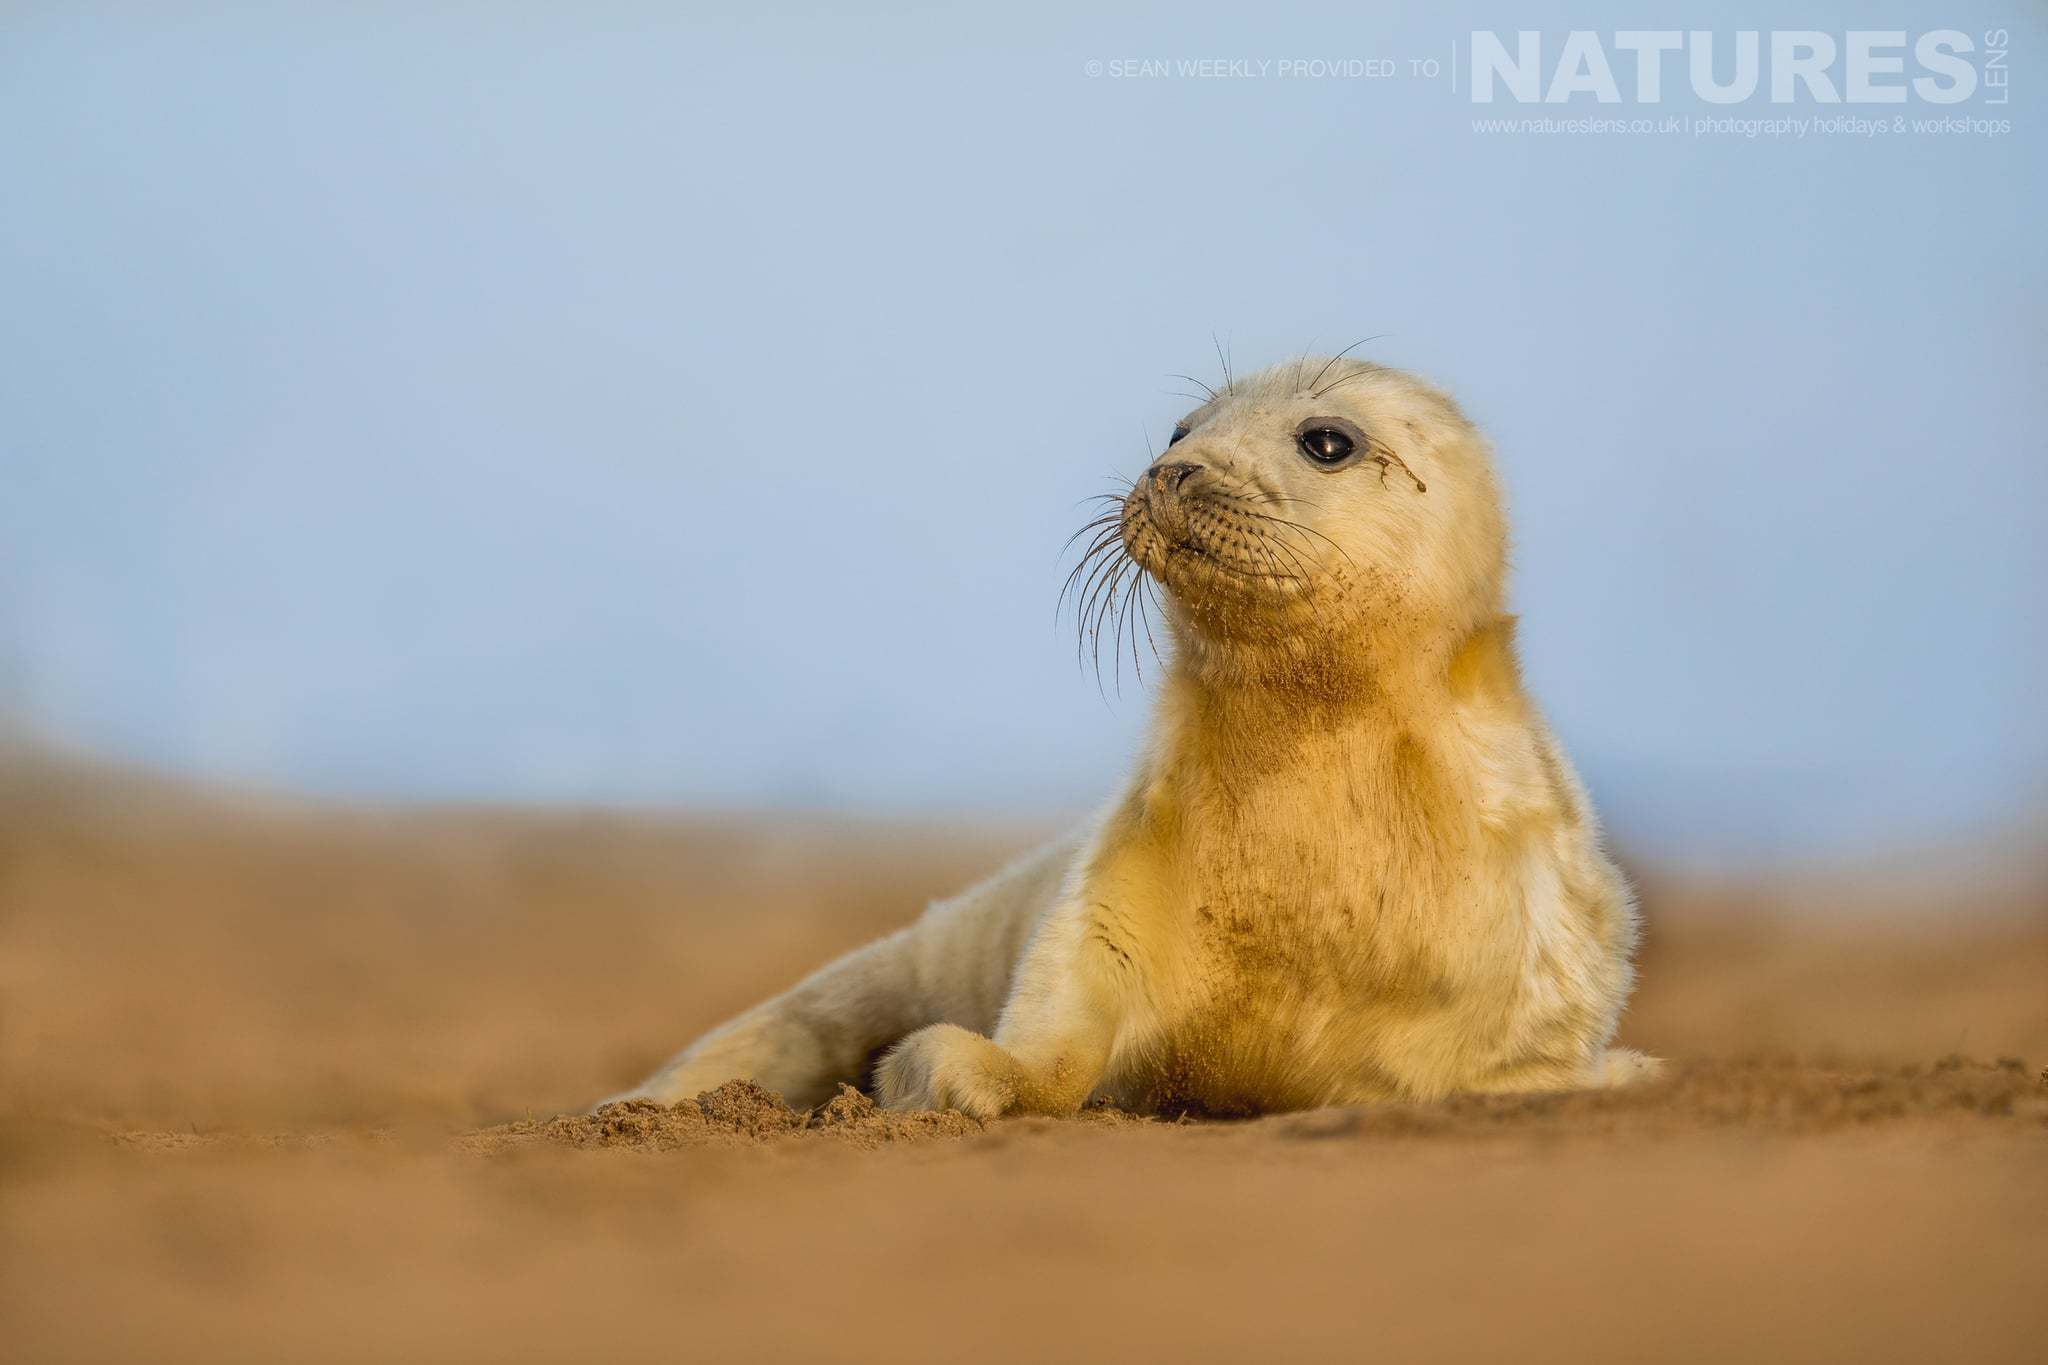 One of the seal pup raises itself up to peer across the sands photographed on the NaturesLens Seals of Lincolnshire Photography Holiday